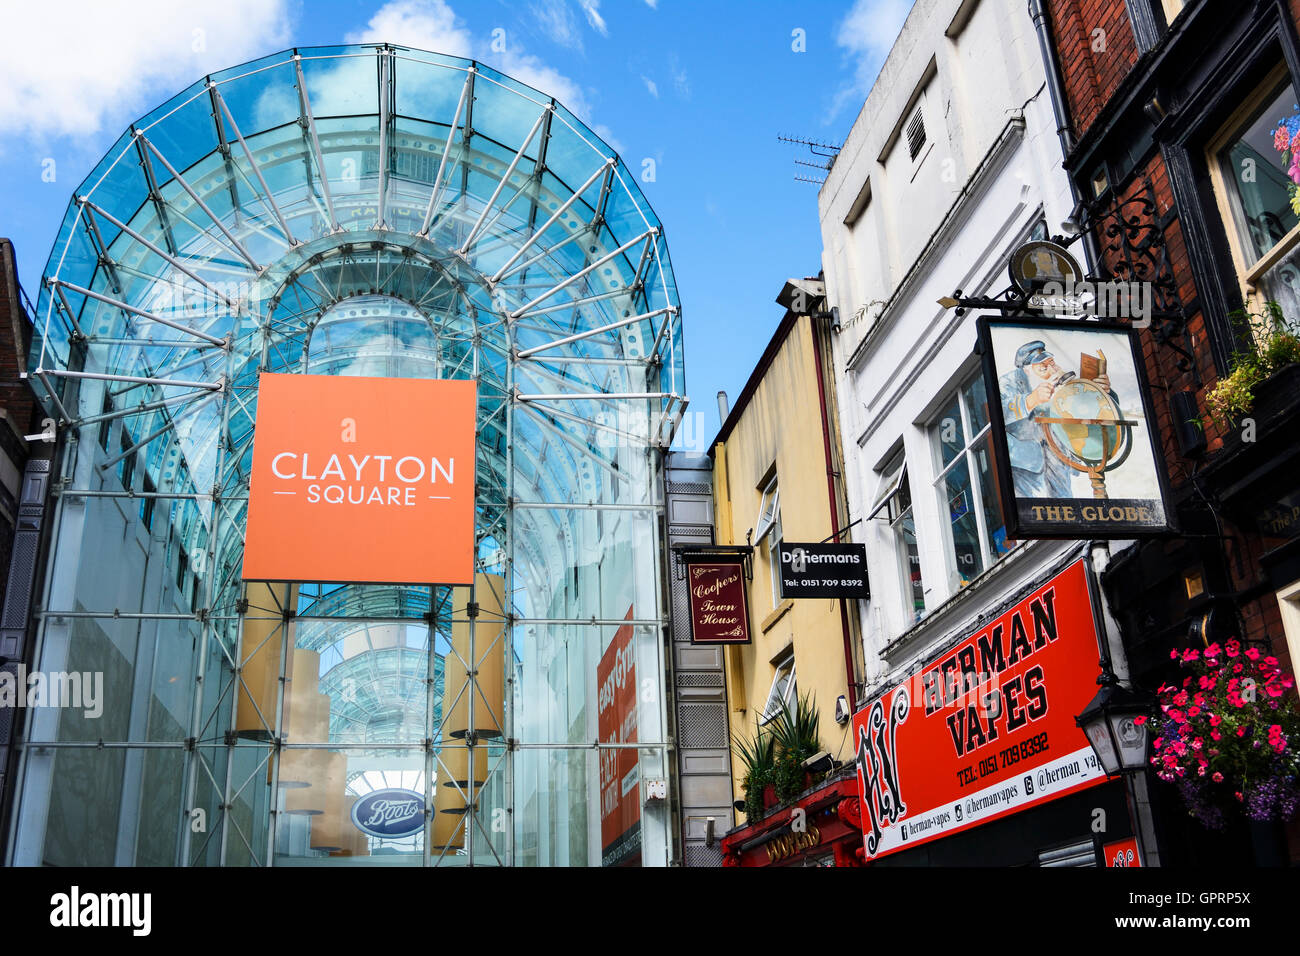 Clayton Square shopping arcade in Liverpool city centre. - Stock Image